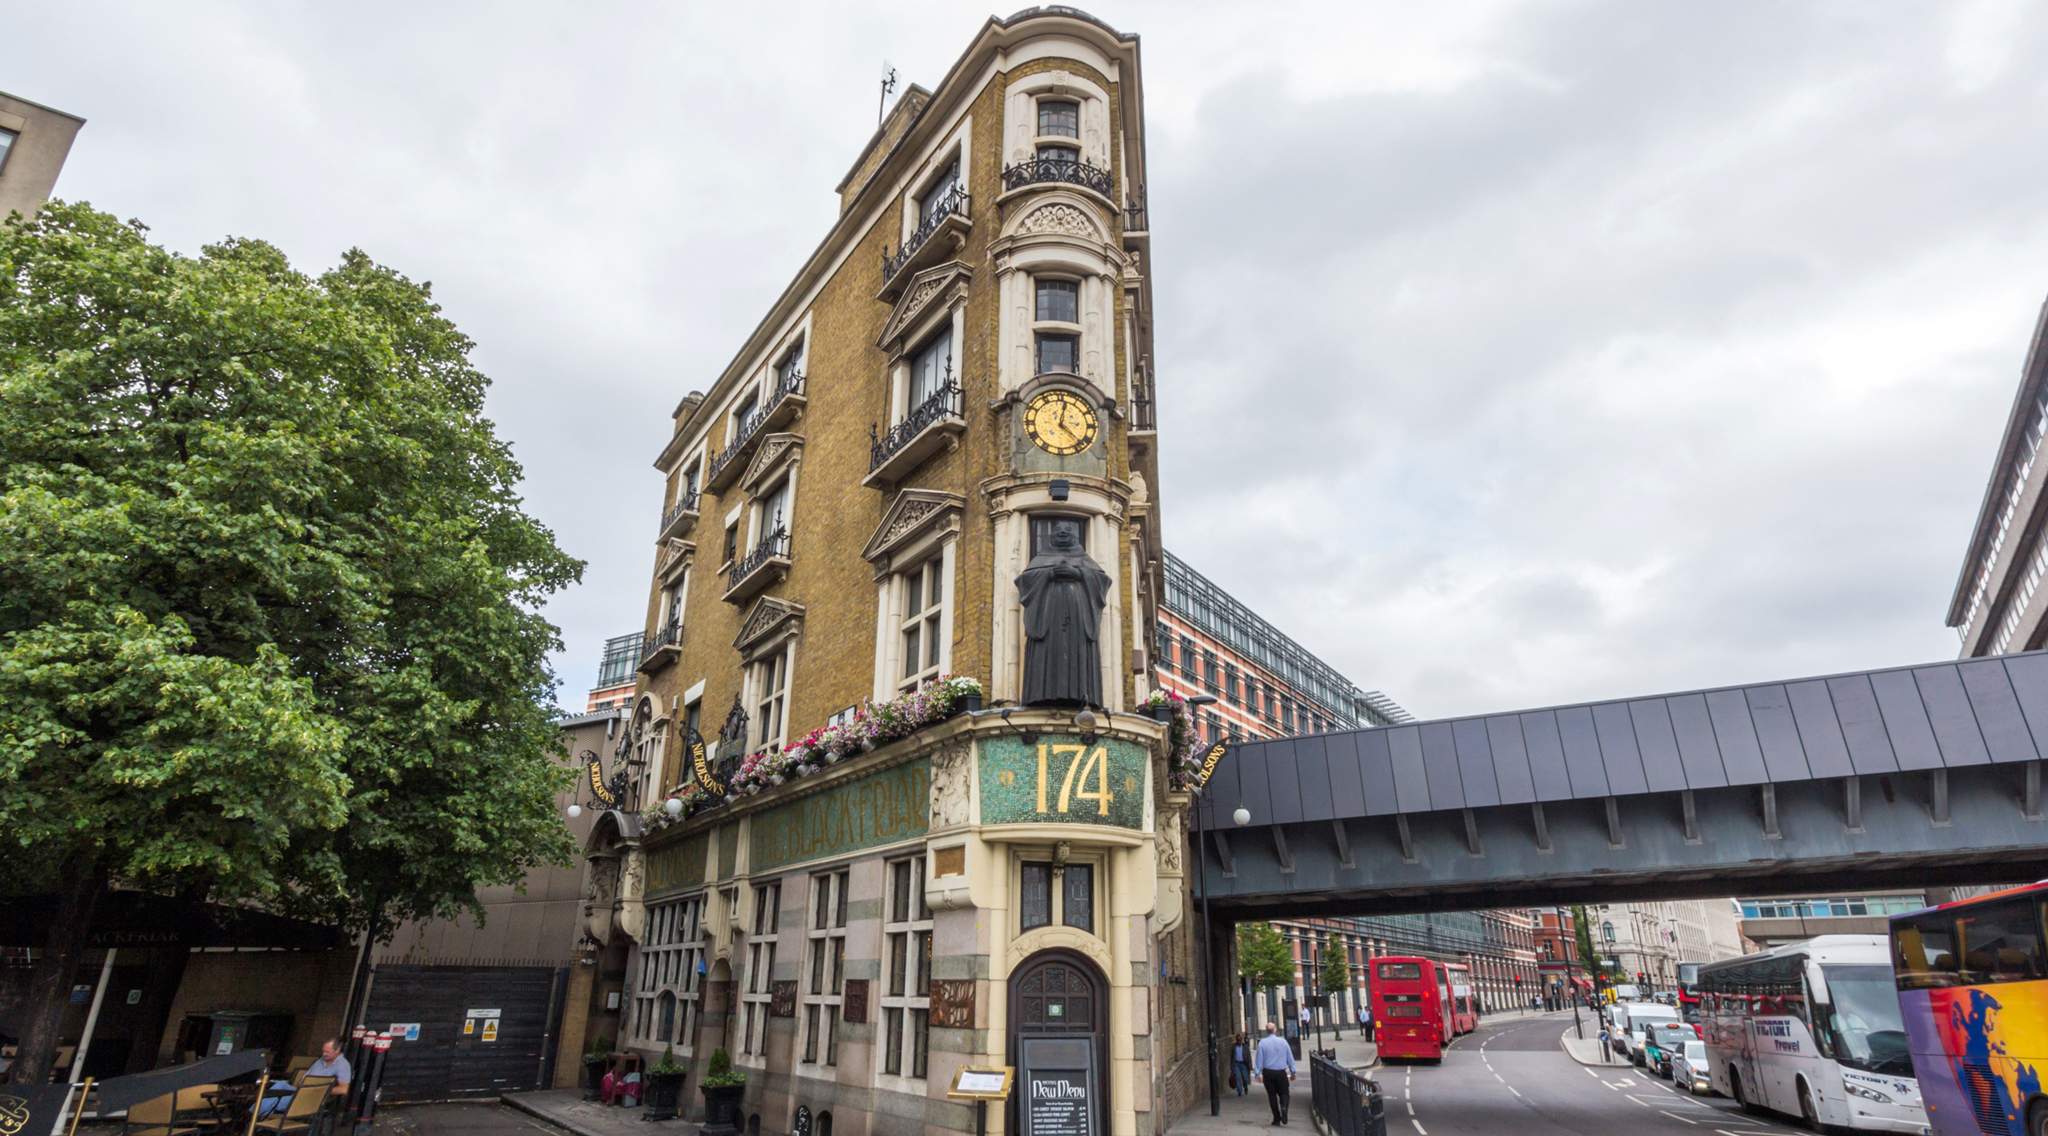 Best buildings in London: Blackfriar pub